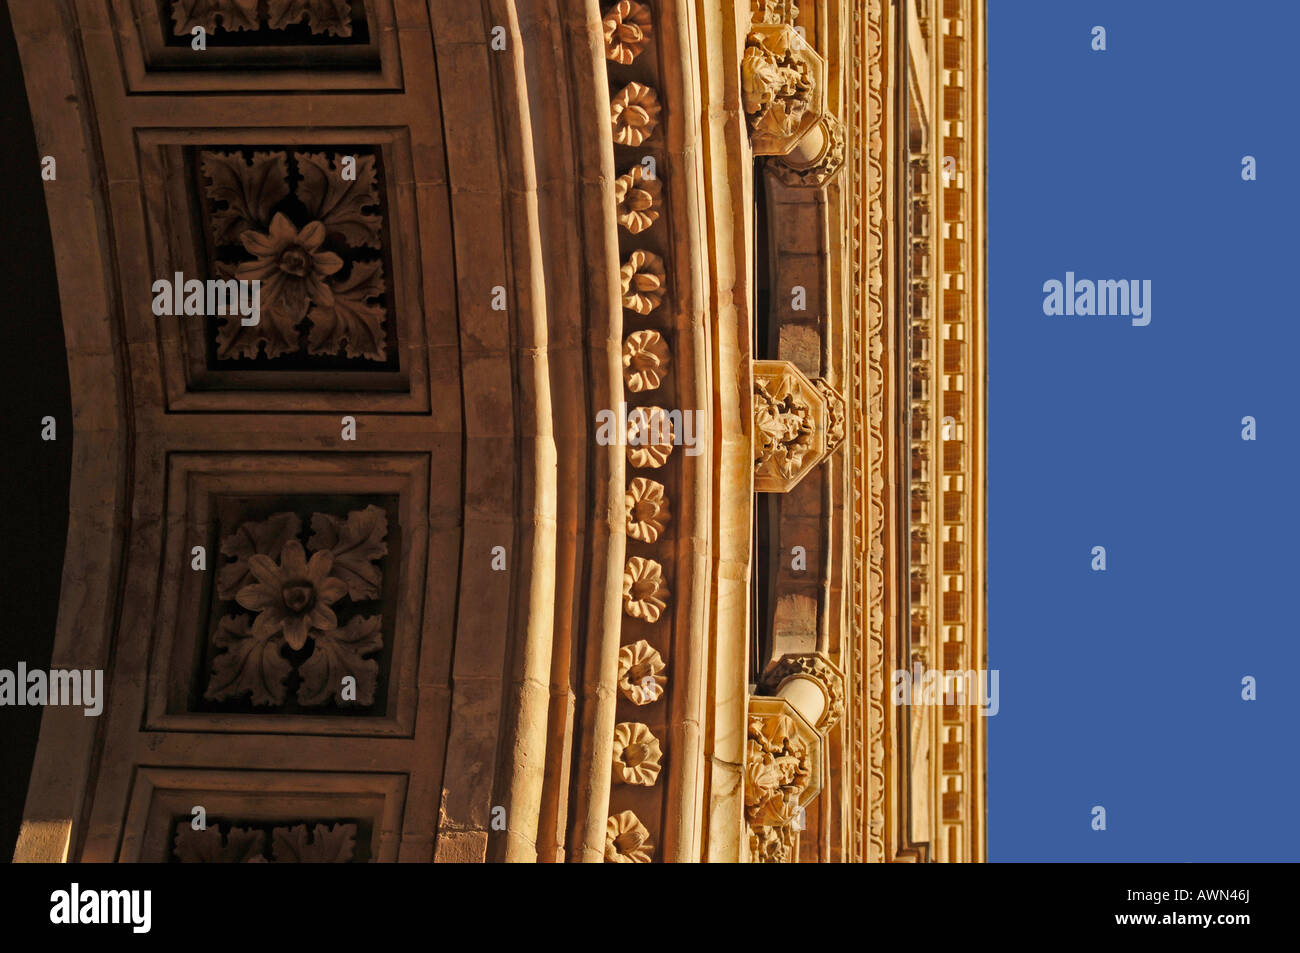 Detail, Upper Bavarian government buildings, Munich, Germany, Europe Stock Photo